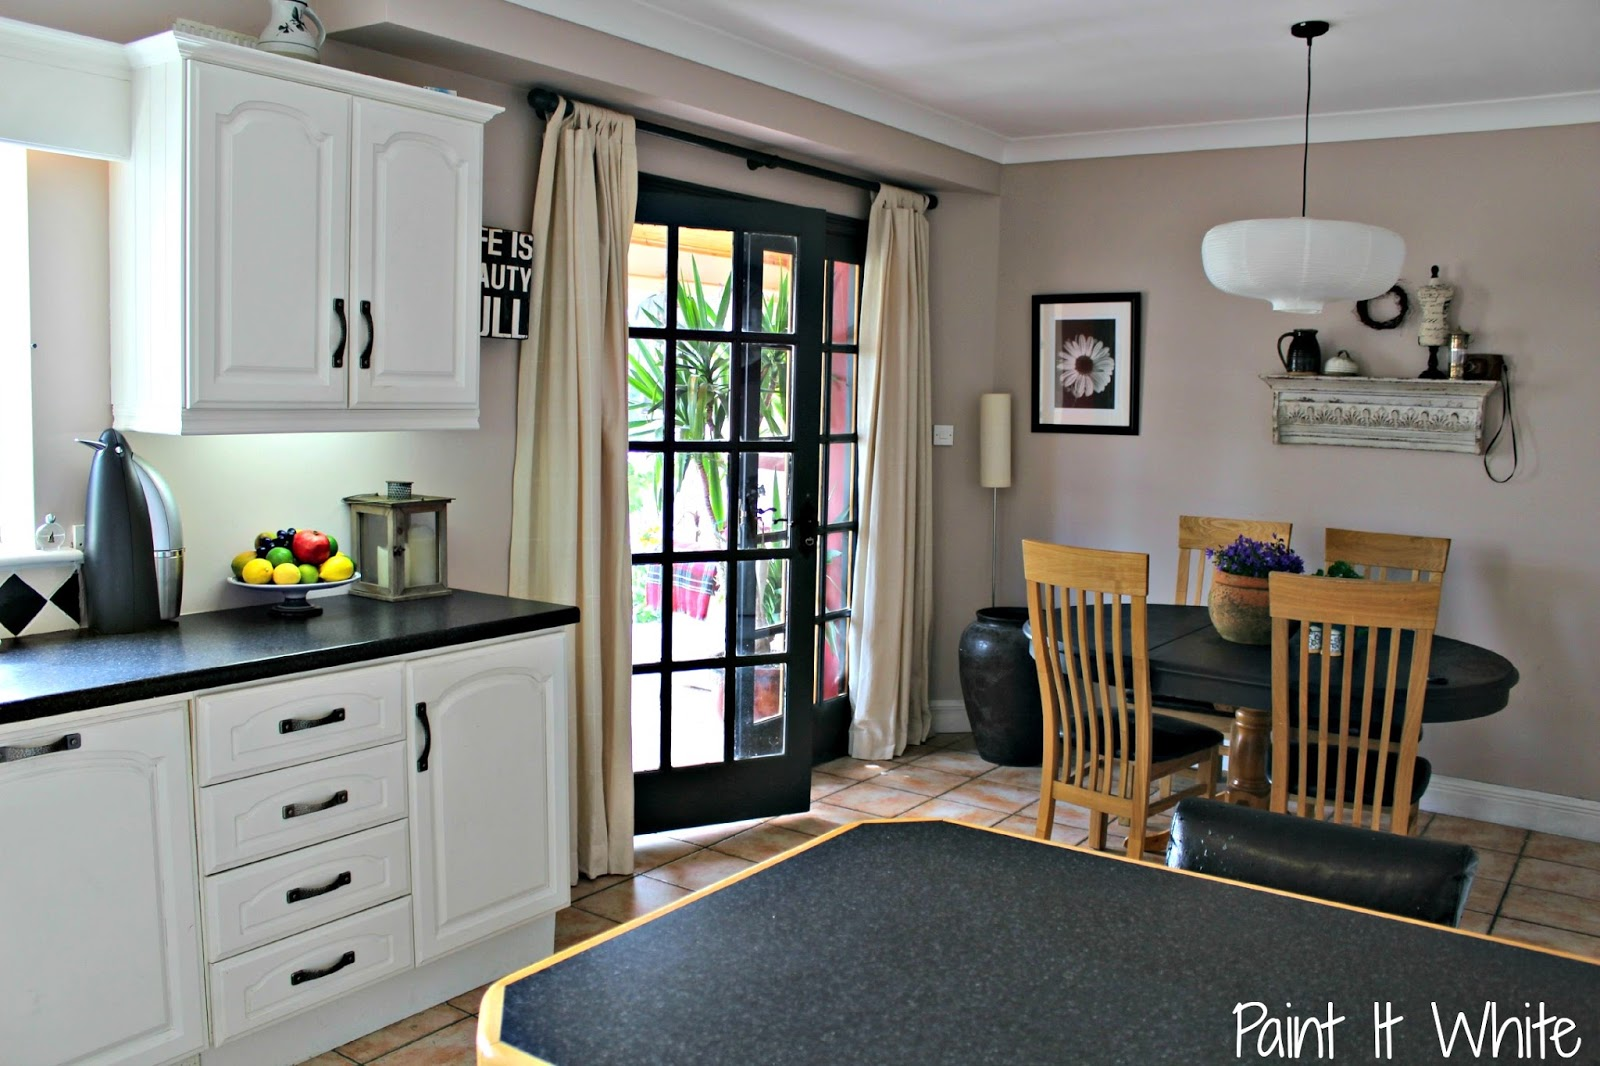 6 annie sloan chalk paint in old white for kitchen cabinet makeover provence with dark remodelaholic   beautiful white kitchen update  with chalk paint    rh   remodelaholic com